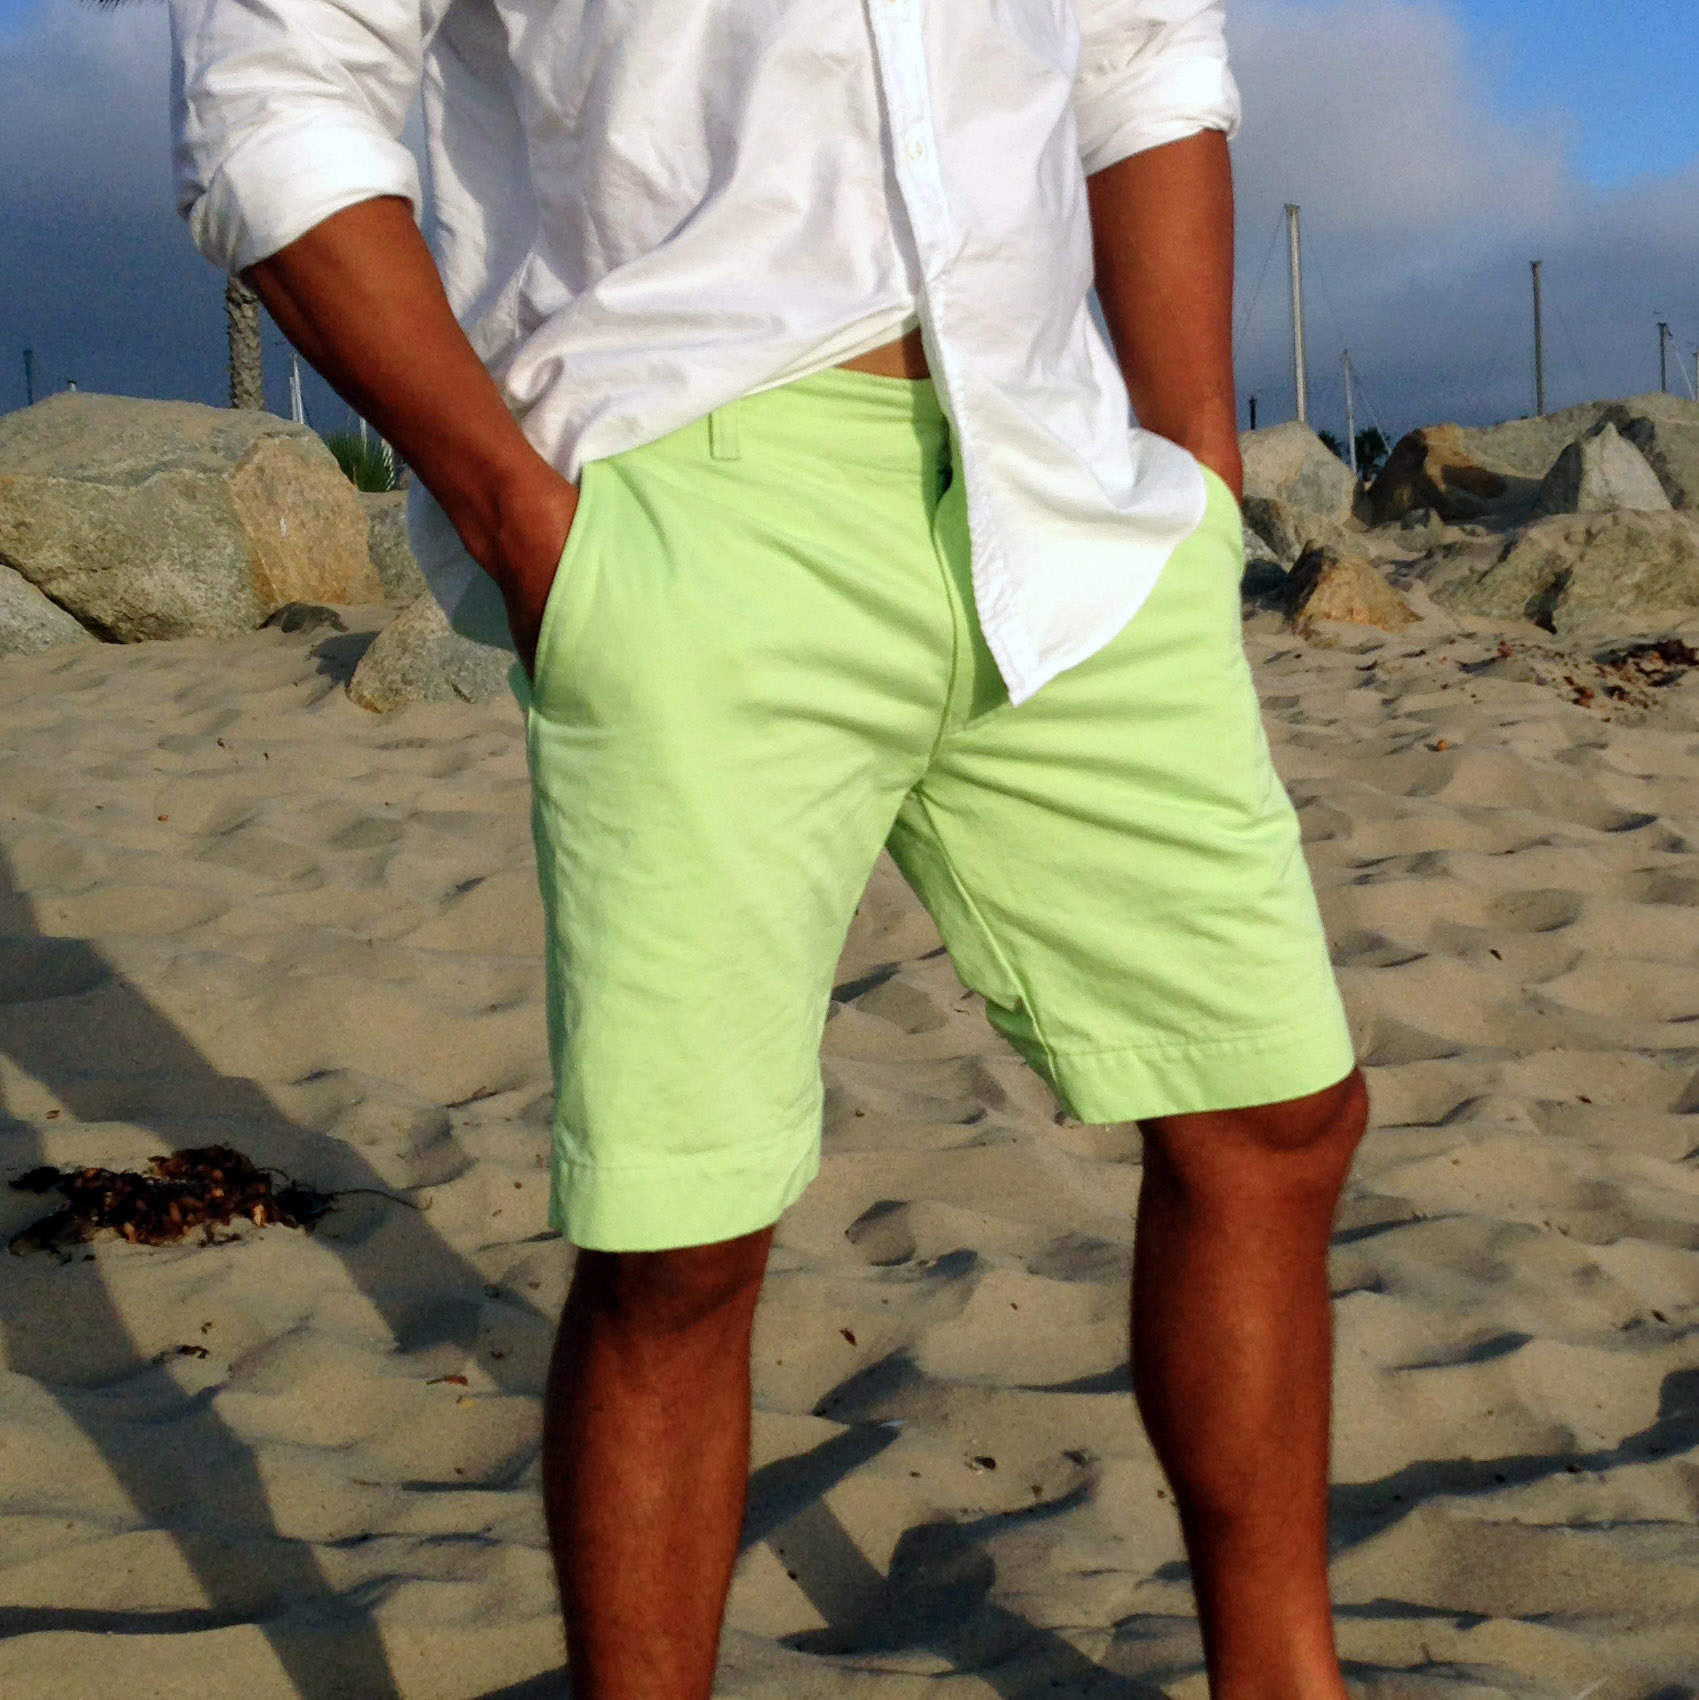 File:Men's Shorts - Old Bull Lee.jpg